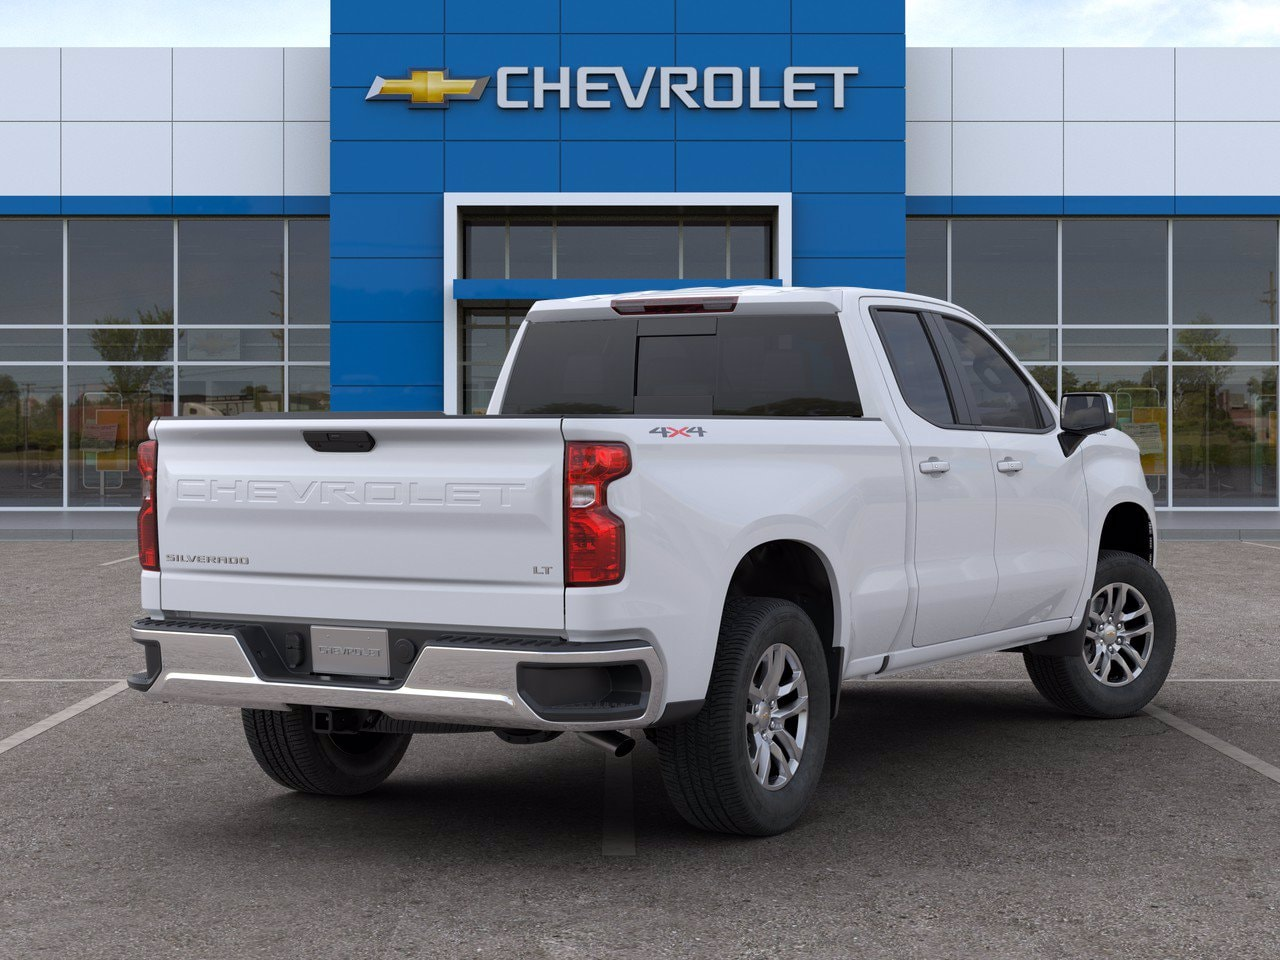 2020 Chevrolet Silverado 1500 Double Cab 4x4, Pickup #C201500 - photo 2